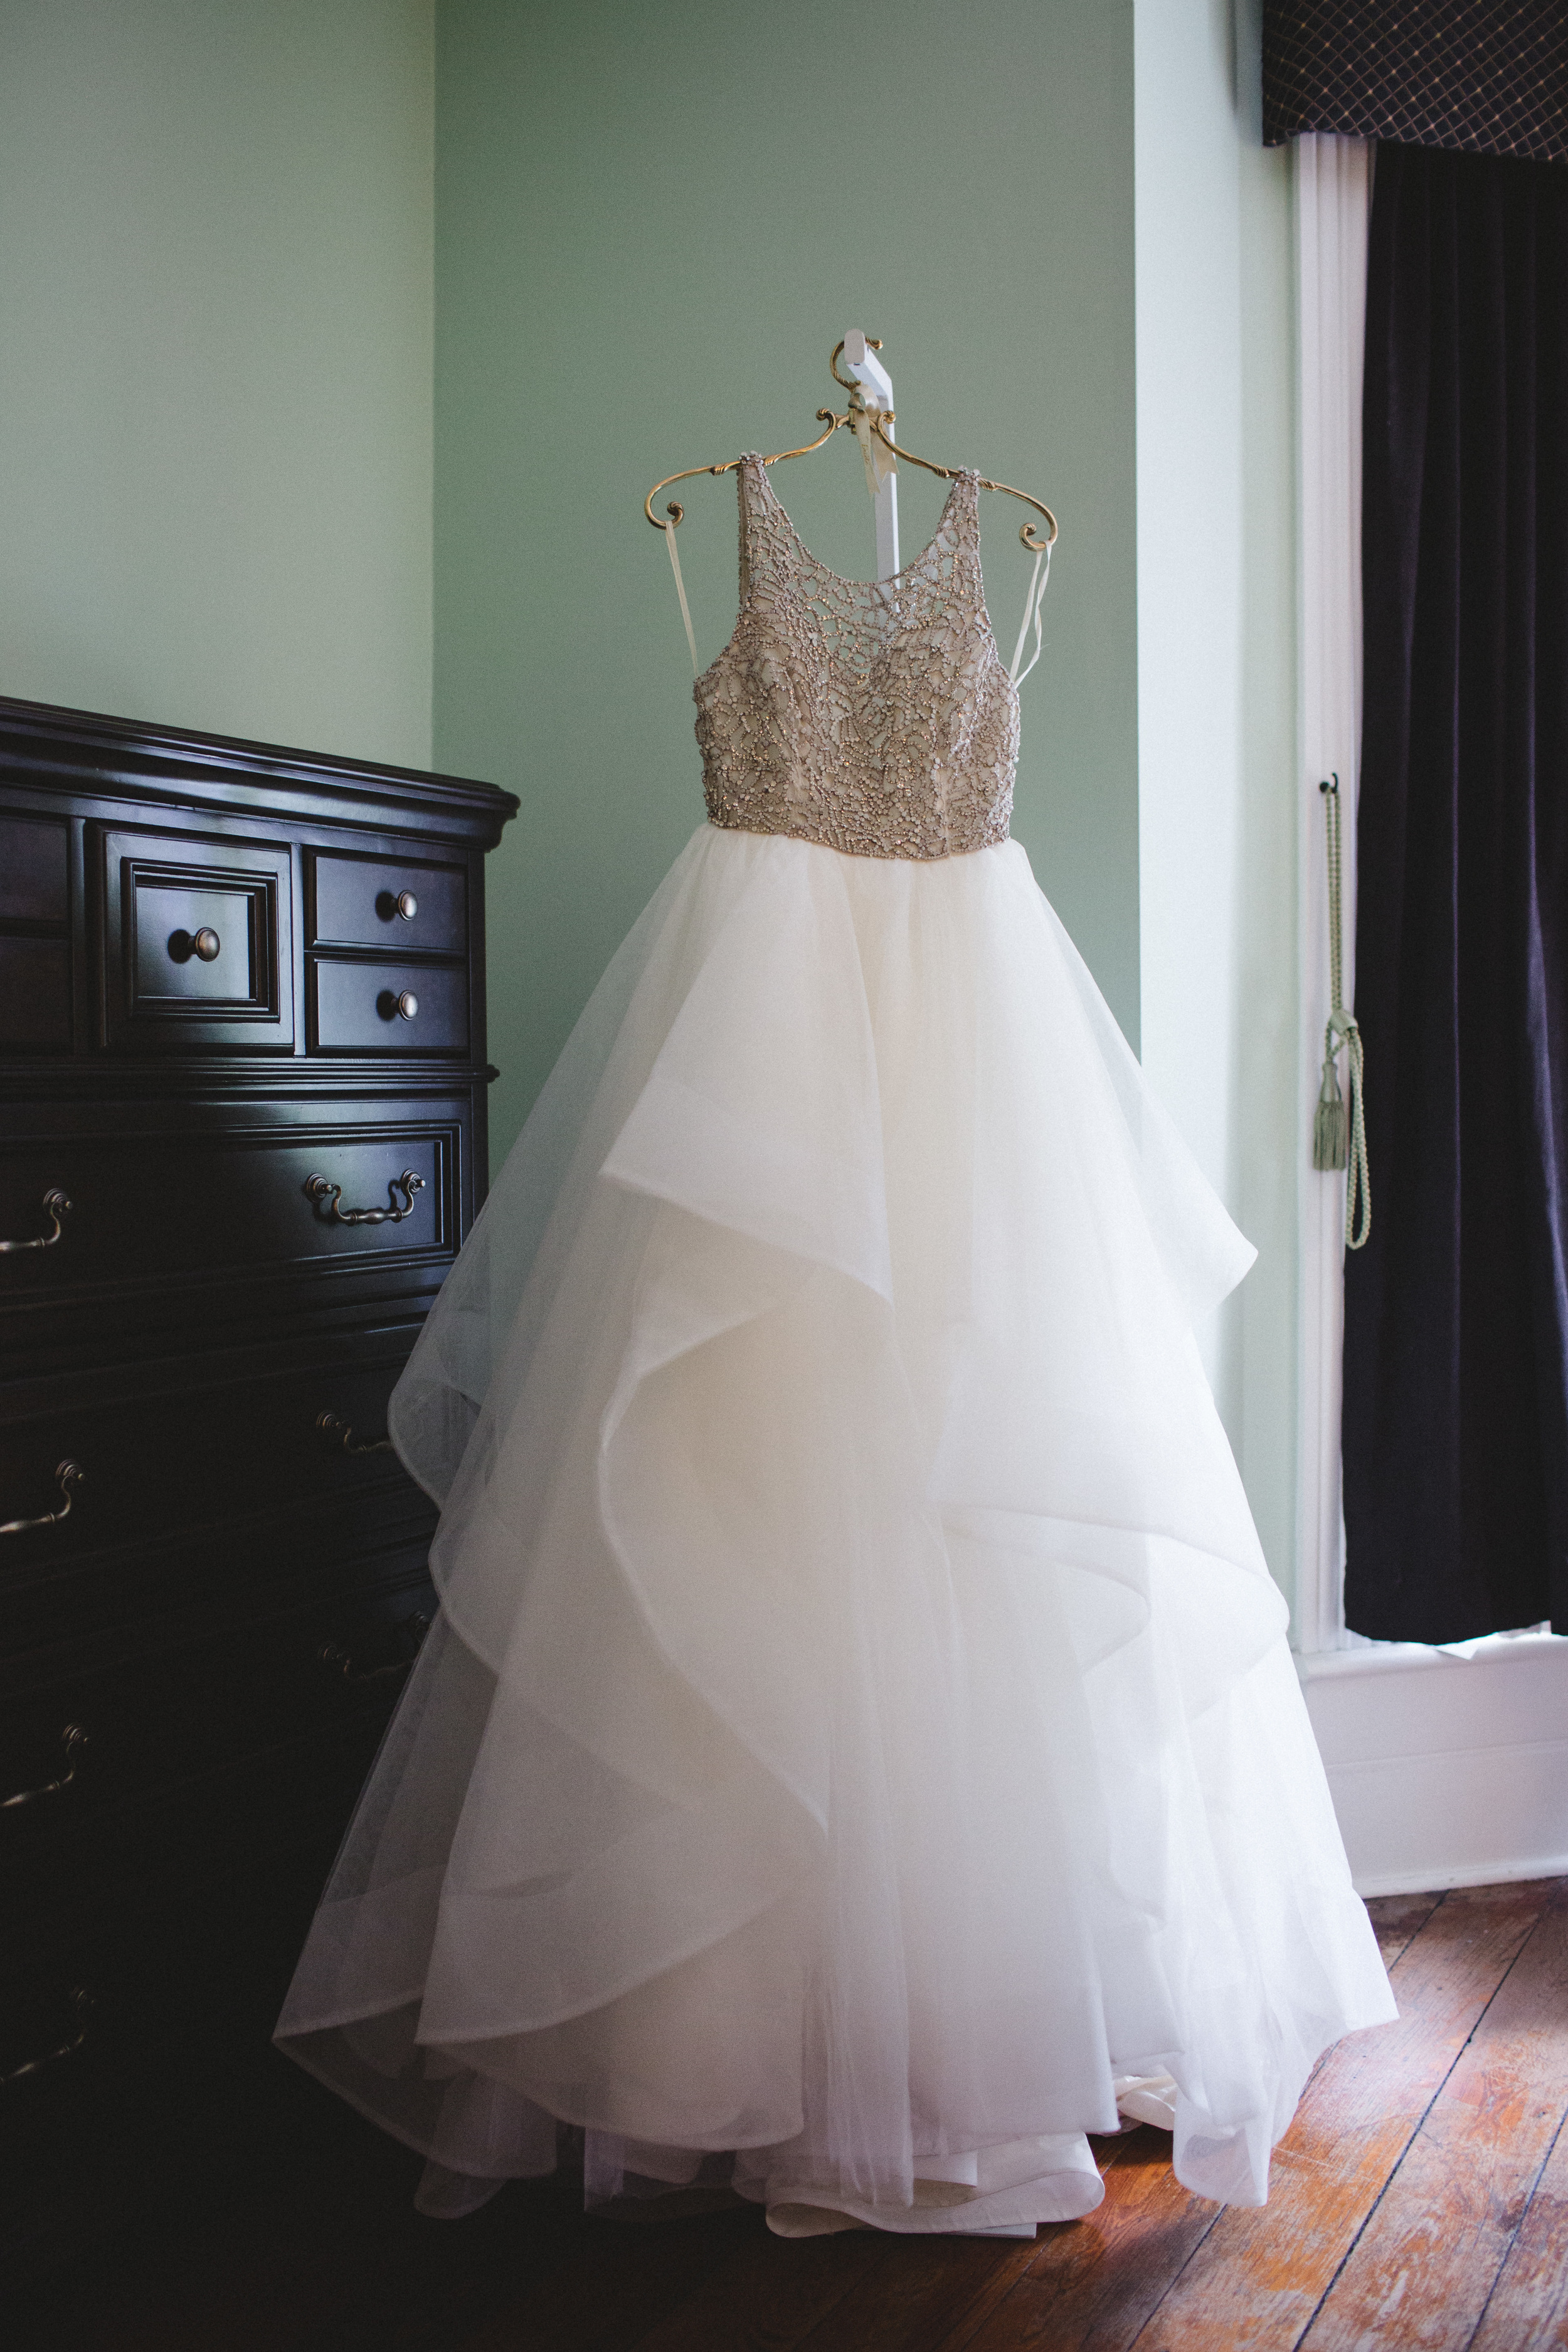 daniela-and-pedro-wedding-izzy-hudgins-photography-a-to-zinnias-whitfield-square-charles-h-morris-center-wedding-ivoyy-and-beau-bridal-boutique-dorie-hayley-paige-savannah-wedding-planner-savannah-bridal-boutique-savannah-weddings-4.jpg